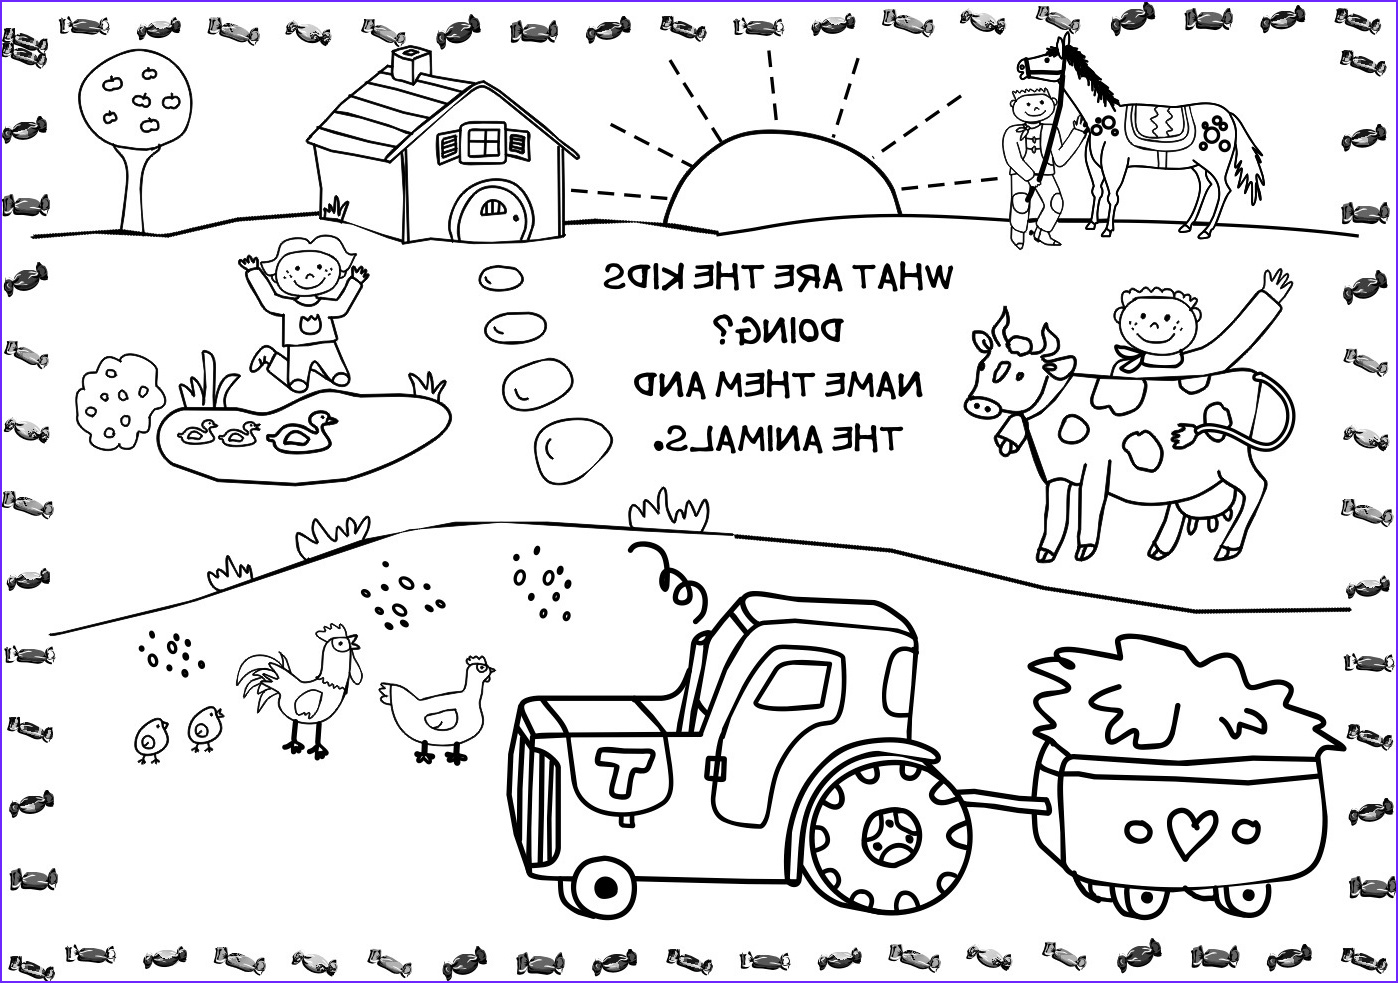 Free Printable Animal Coloring Pages Unique Collection Free Printable Farm Animal Coloring Pages for Kids